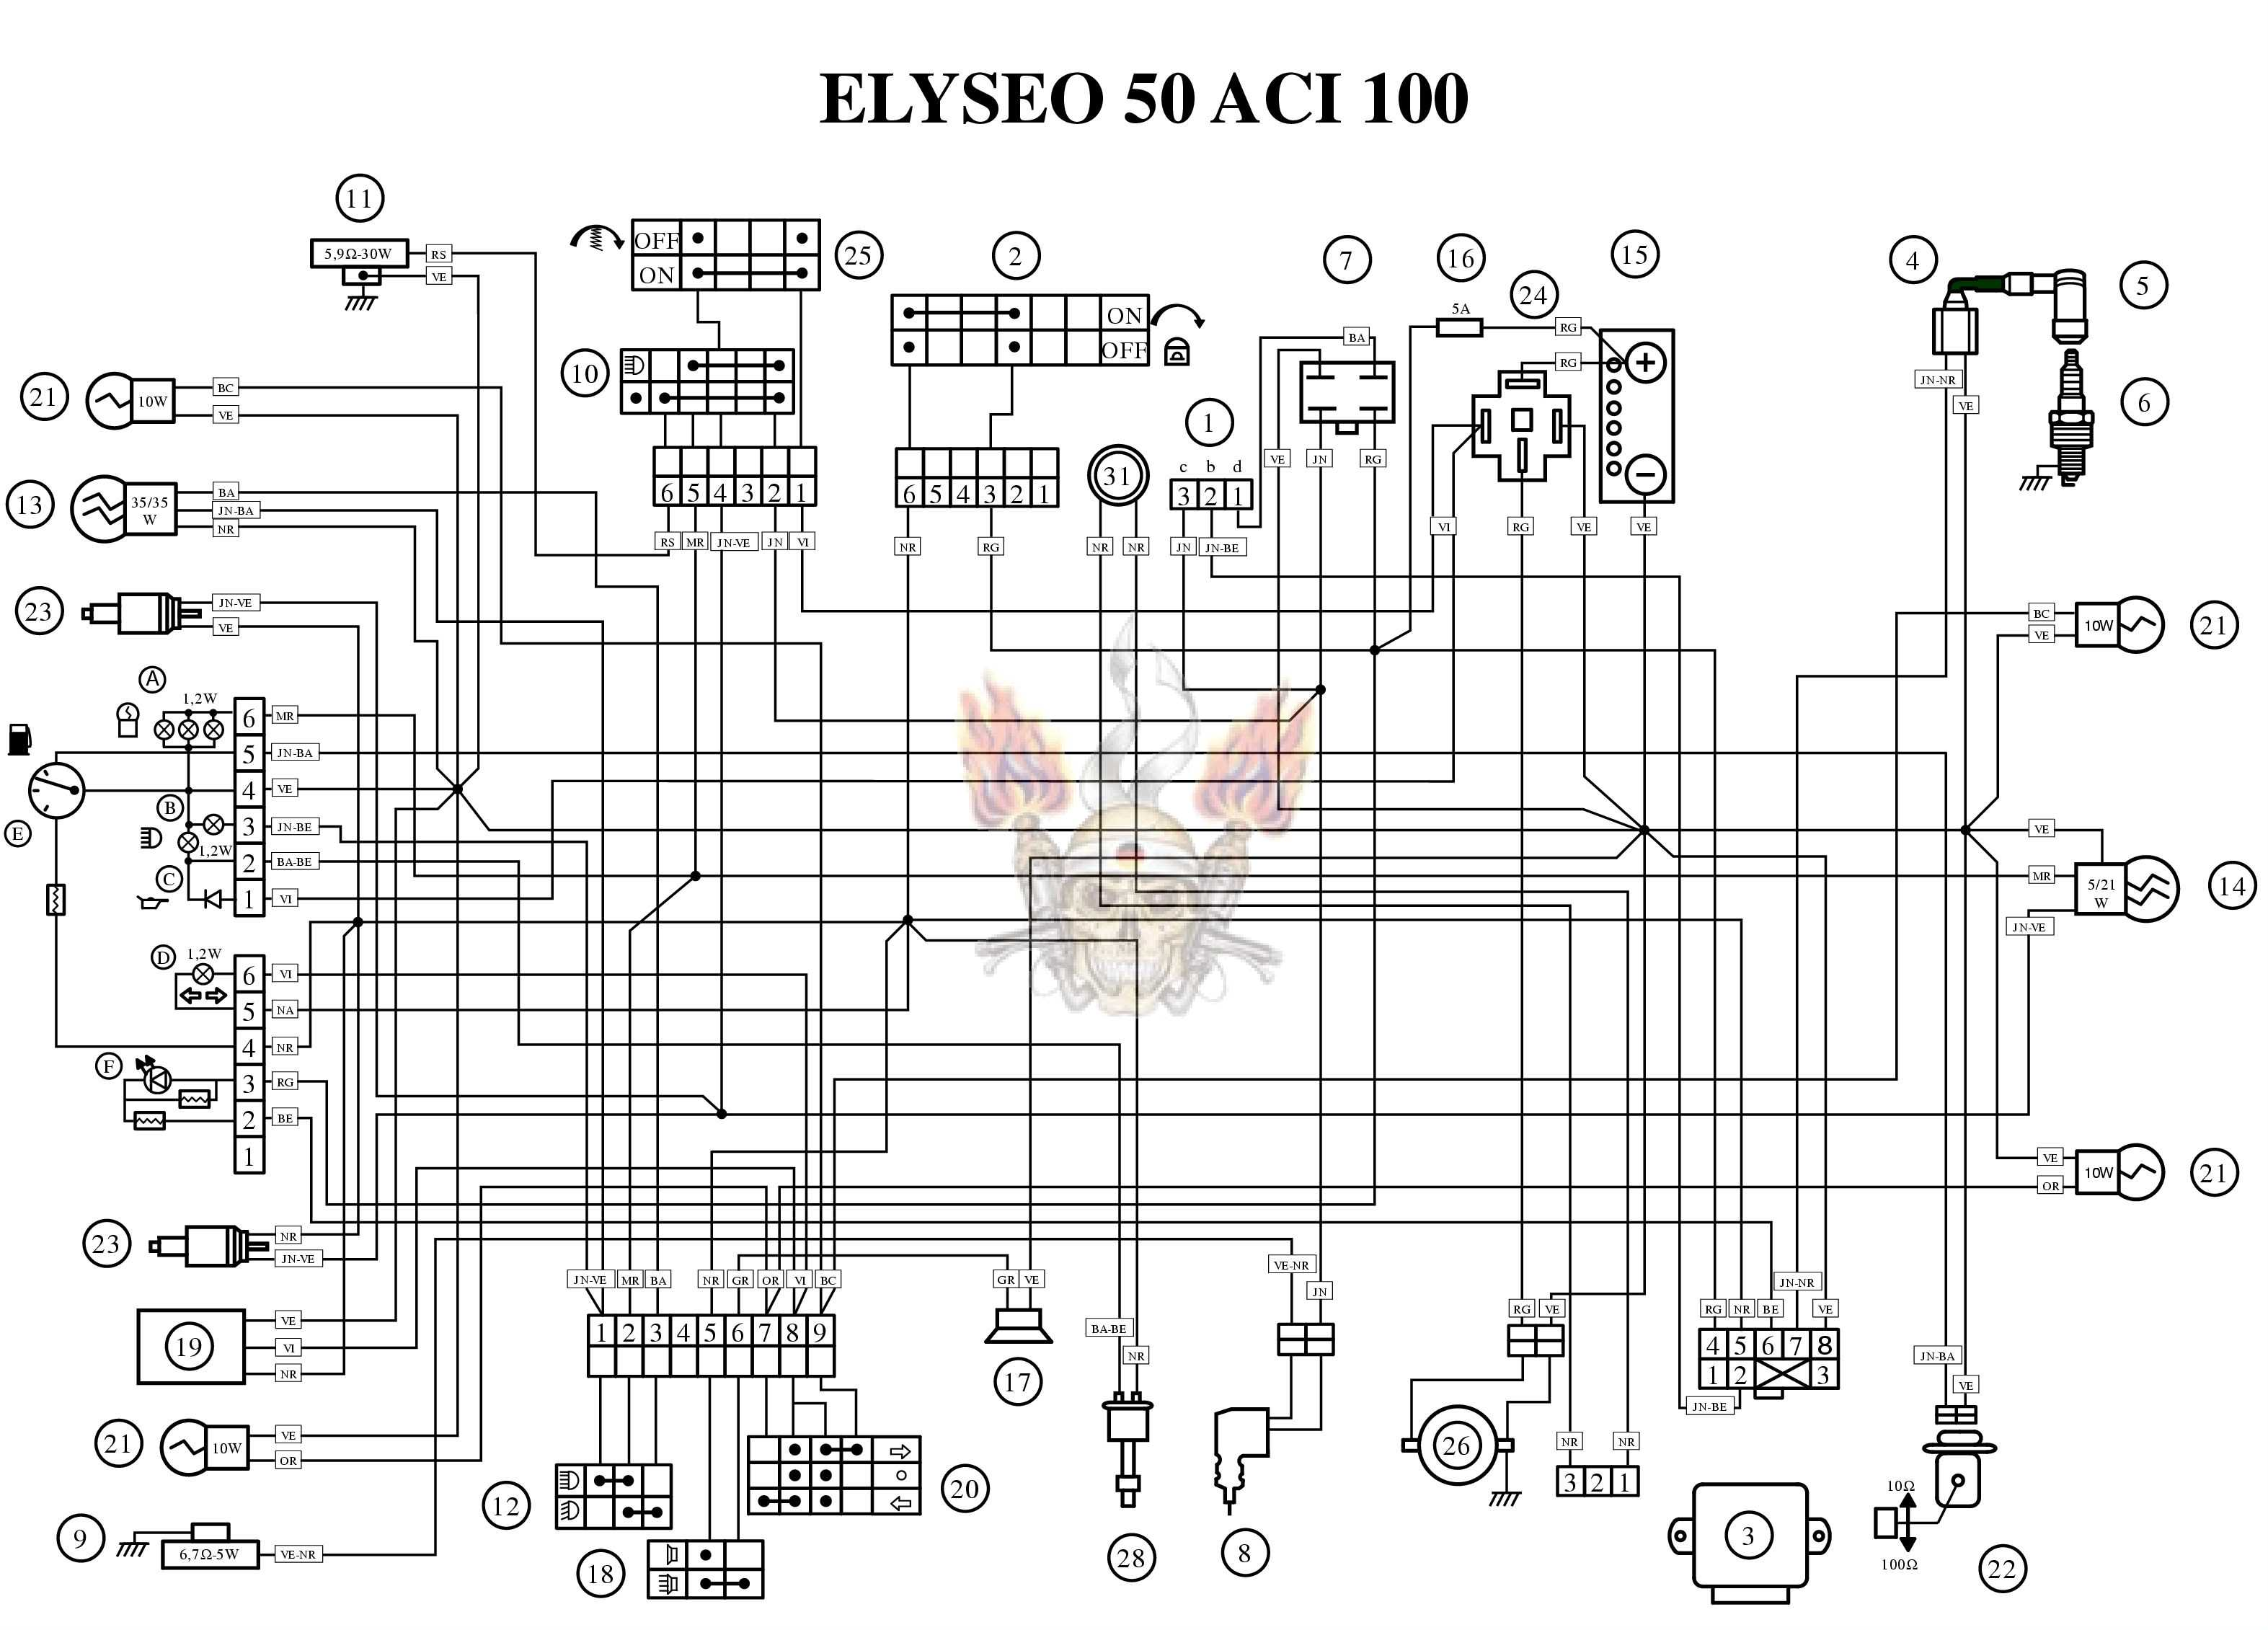 Wiring Diagram Peugeot ELYSEO 50 ACI 100 peugeot 307 wiring diagram efcaviation com peugeot 307 towbar wiring diagram at alyssarenee.co